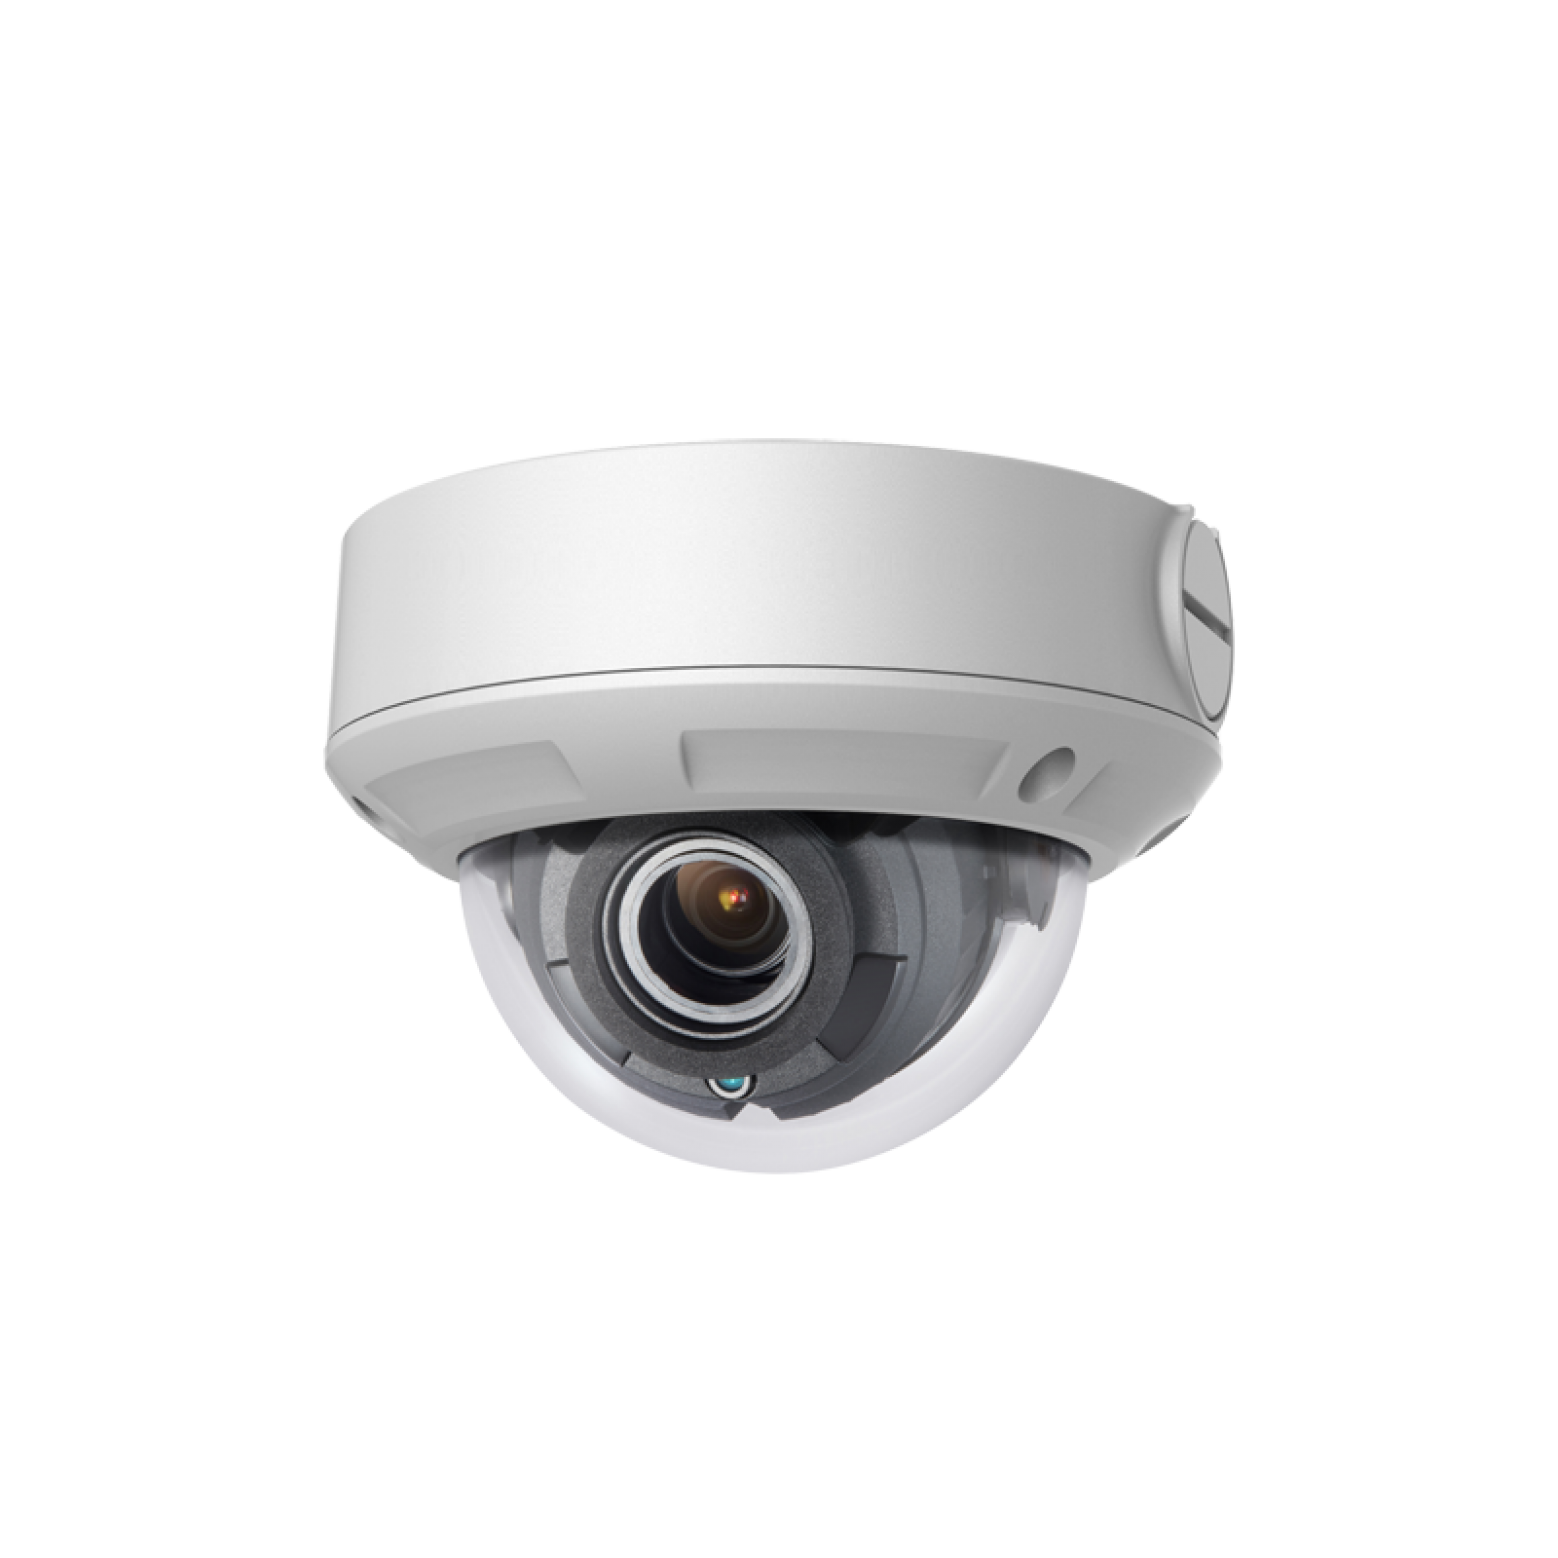 Safire SF-IPDM834ZWAH-4, 4 Megapixel, 2.8~12mm motorzoom, Dome Camera